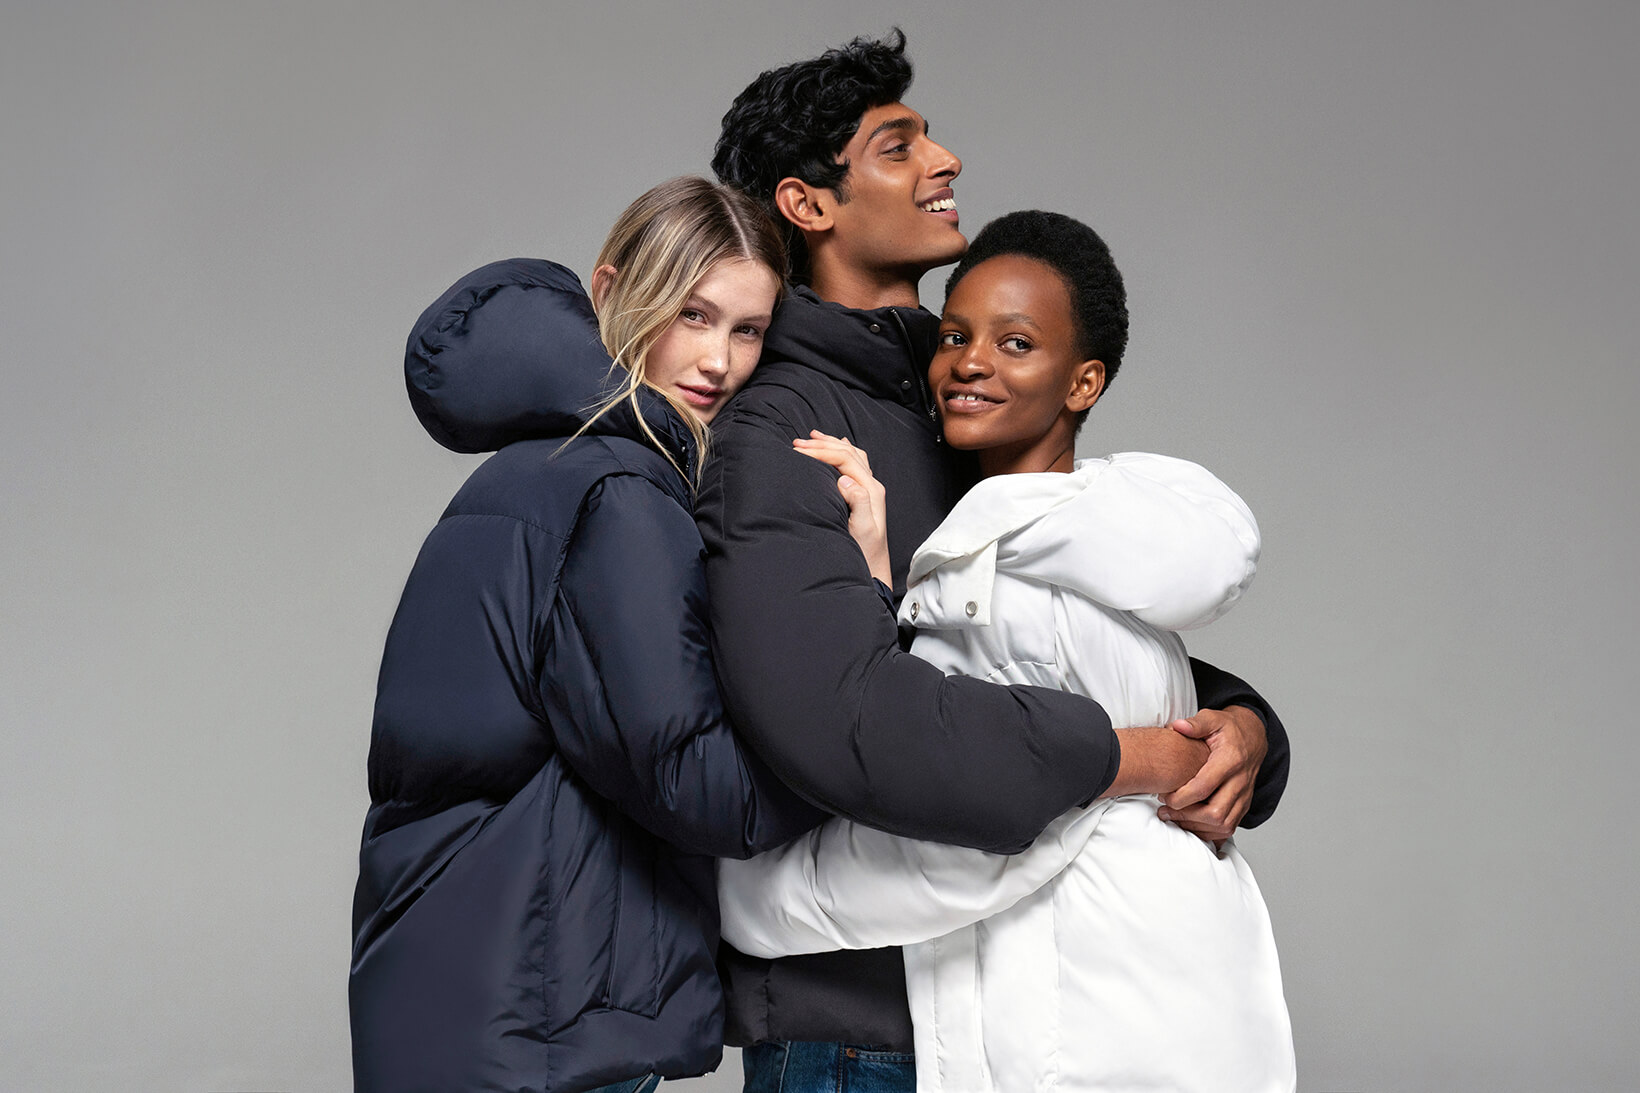 pangaia-flwrdwn-puffer-jackets-winter-white-black-sustainable-cruelty-free-recycle-1